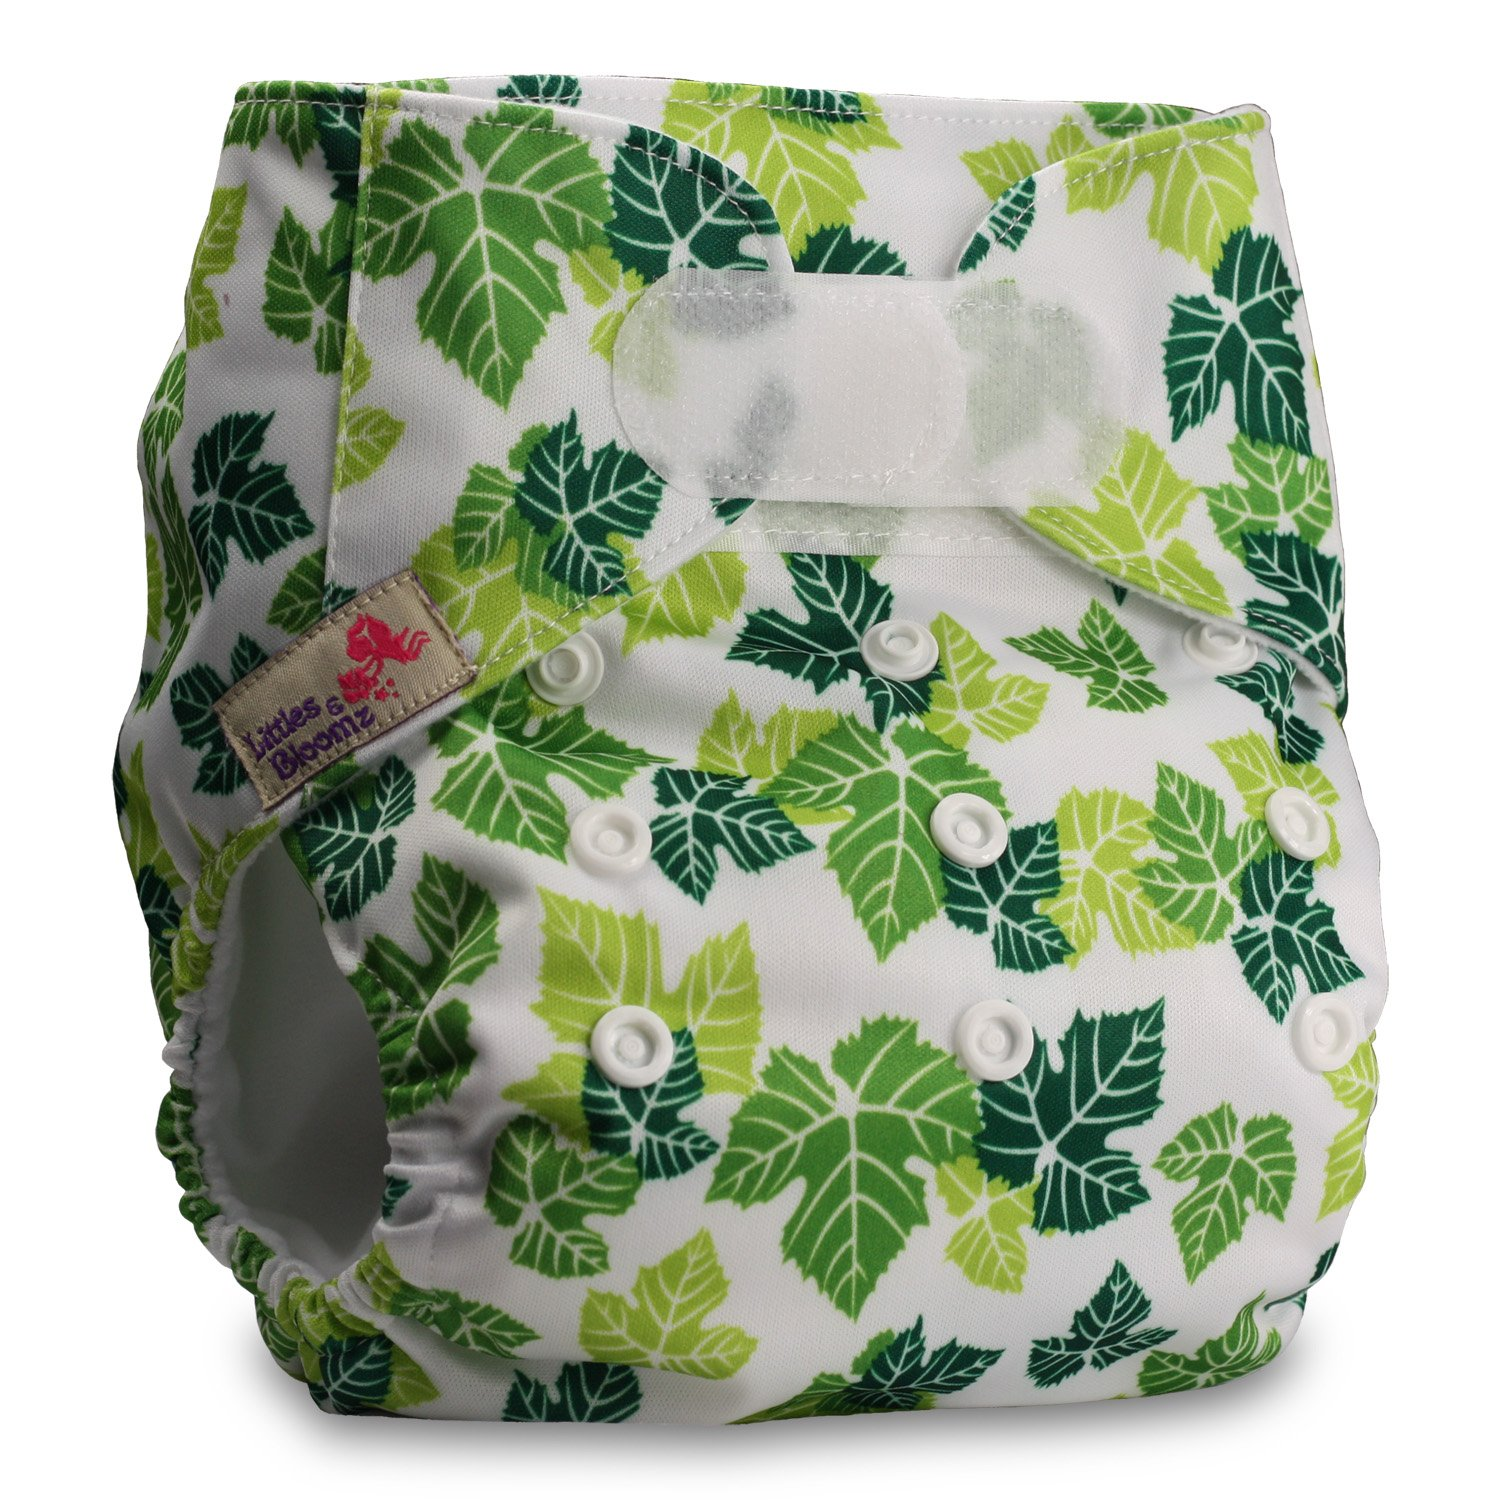 Reusable Pocket Cloth Nappy Littles /& Bloomz Pattern 21 Fastener: Hook-Loop Set of 1 Without Insert